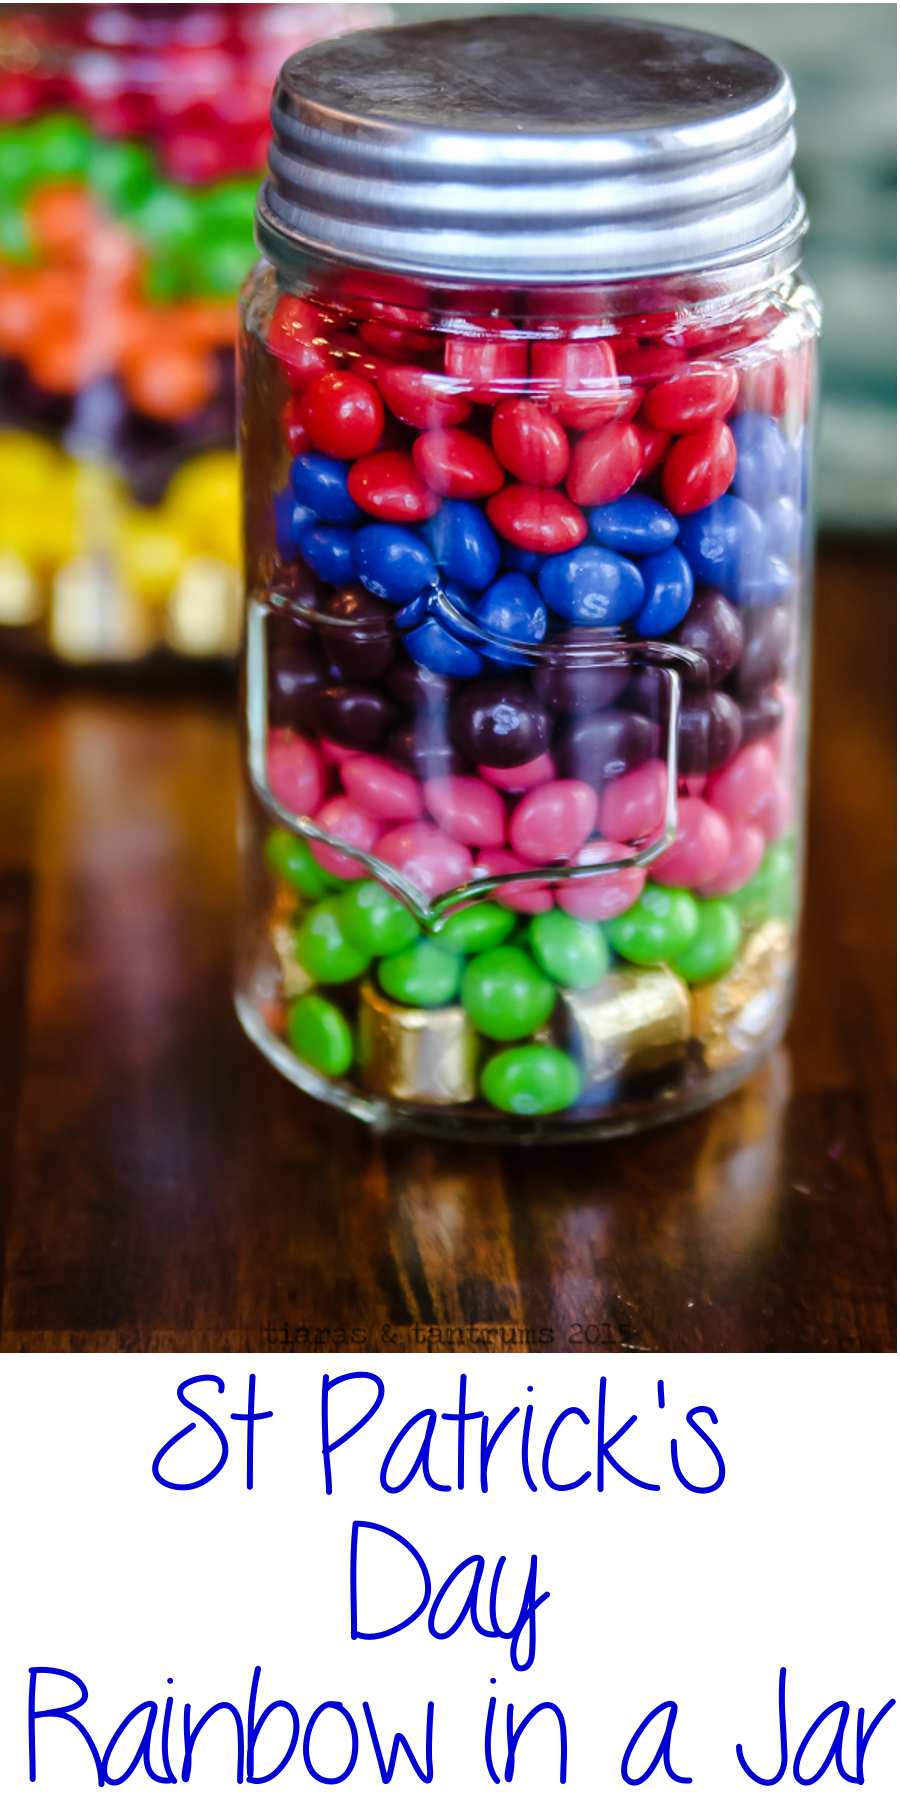 St Patrick's Day rainbow in a Jar